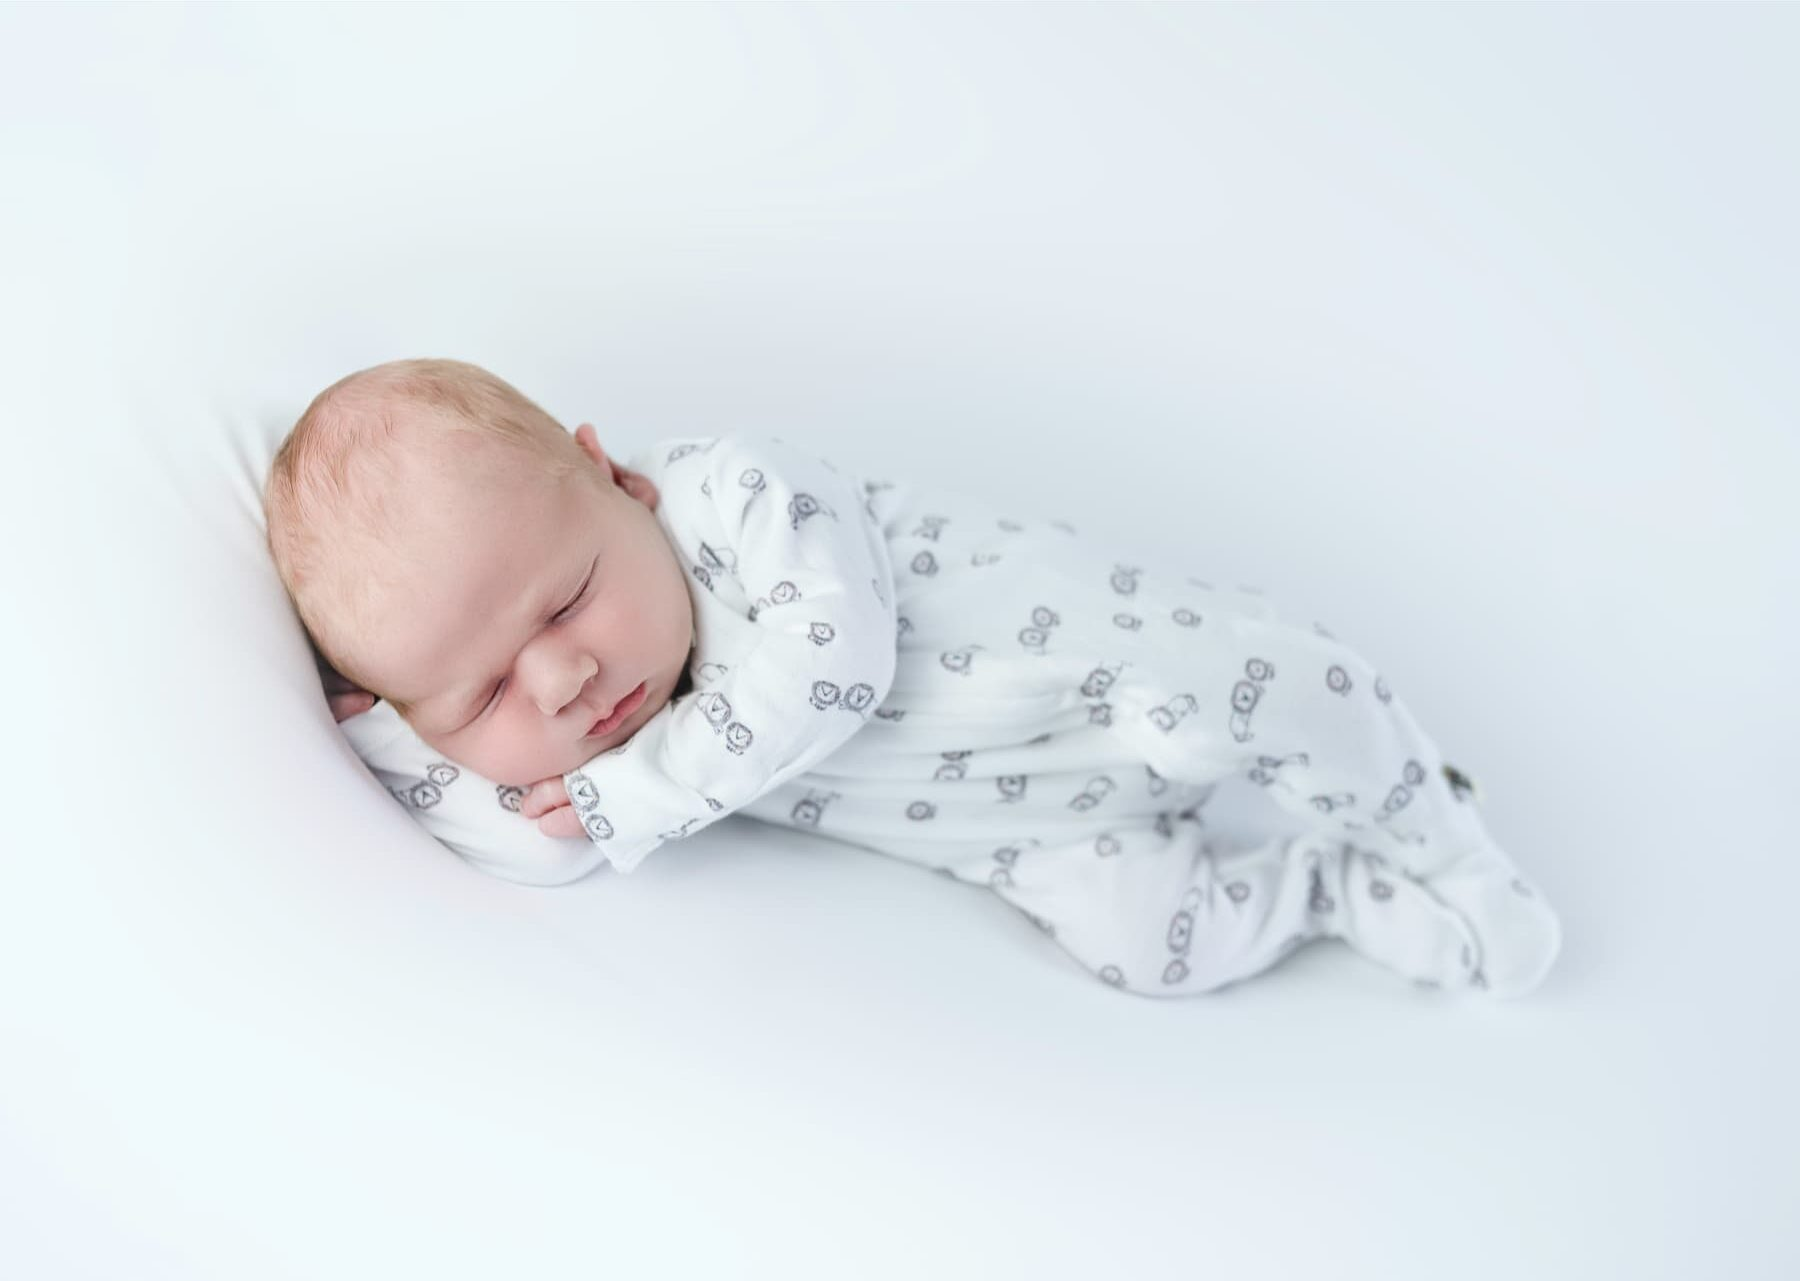 Newborn baby lying down in sleepsuit - Newborn Photographer - Perfect Story Photography